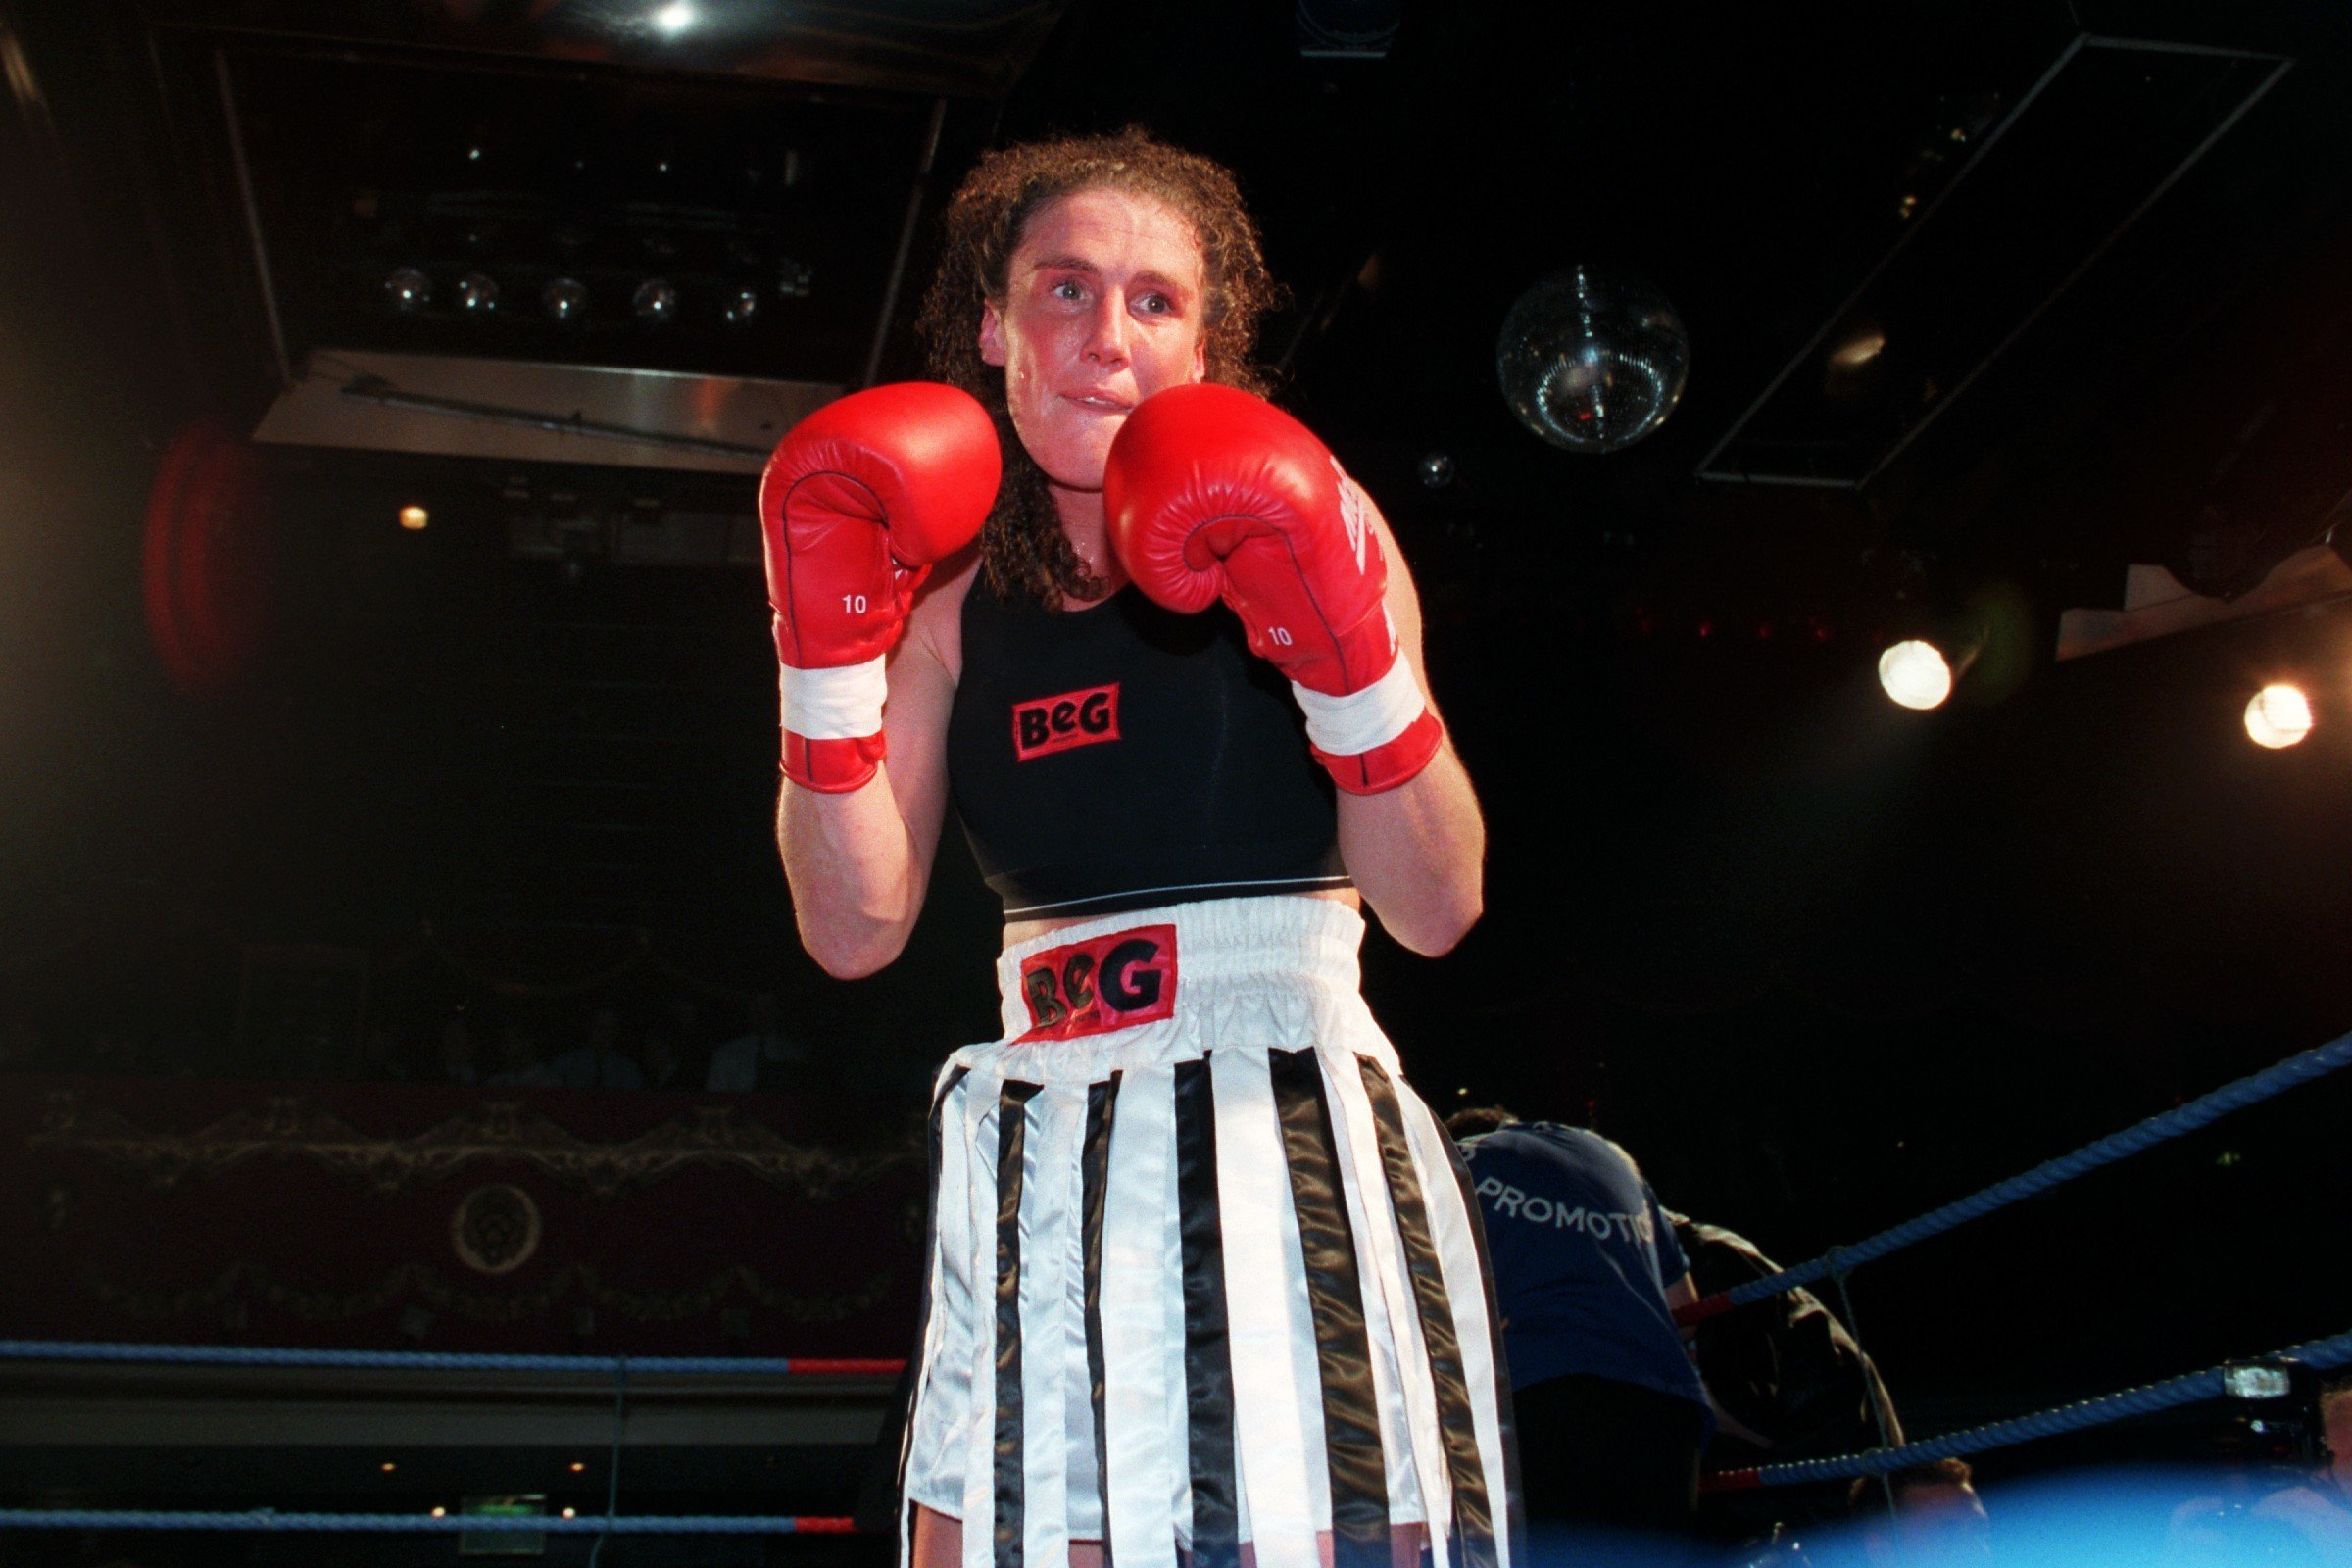 Pioneering women's boxer Jane Couch brands ex-promoter Kellie Maloney 'a hypocrite' for becoming Northern Ireland fighter Cathy McAleer's manager